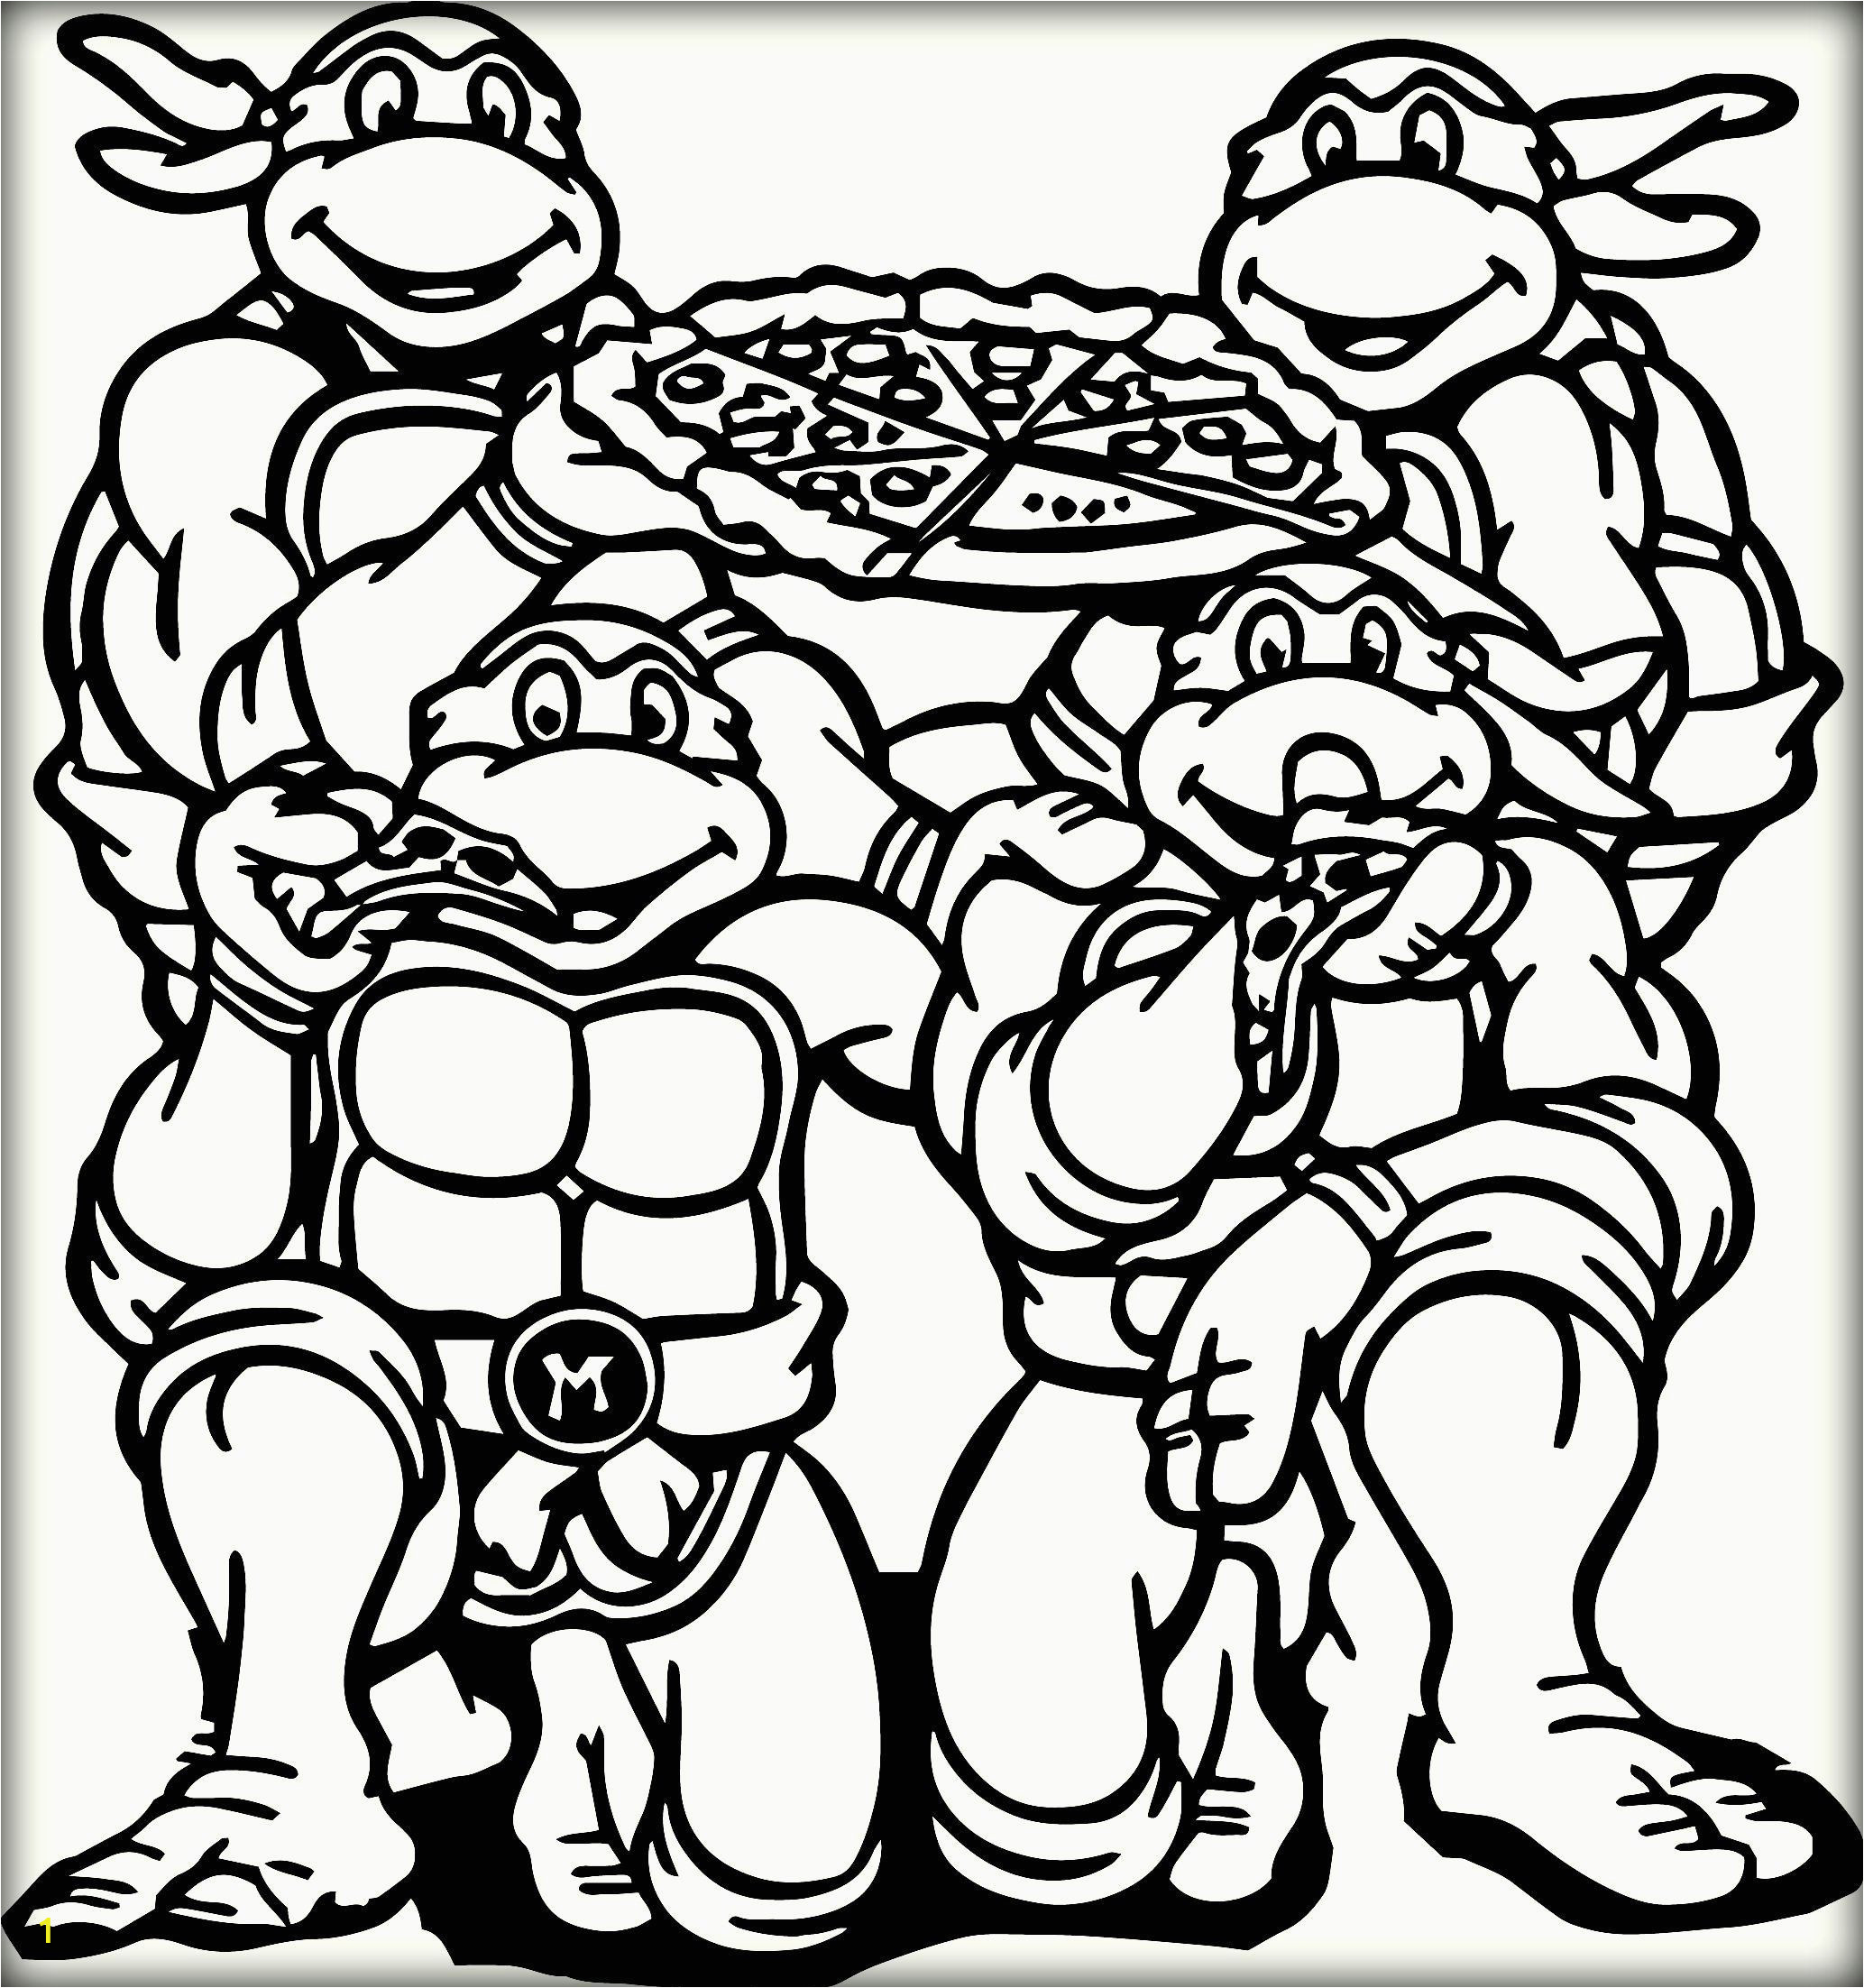 Ninja Turtles Coloring Pages Printable 32 Ninja Turtle Coloring Page In 2020 with Images